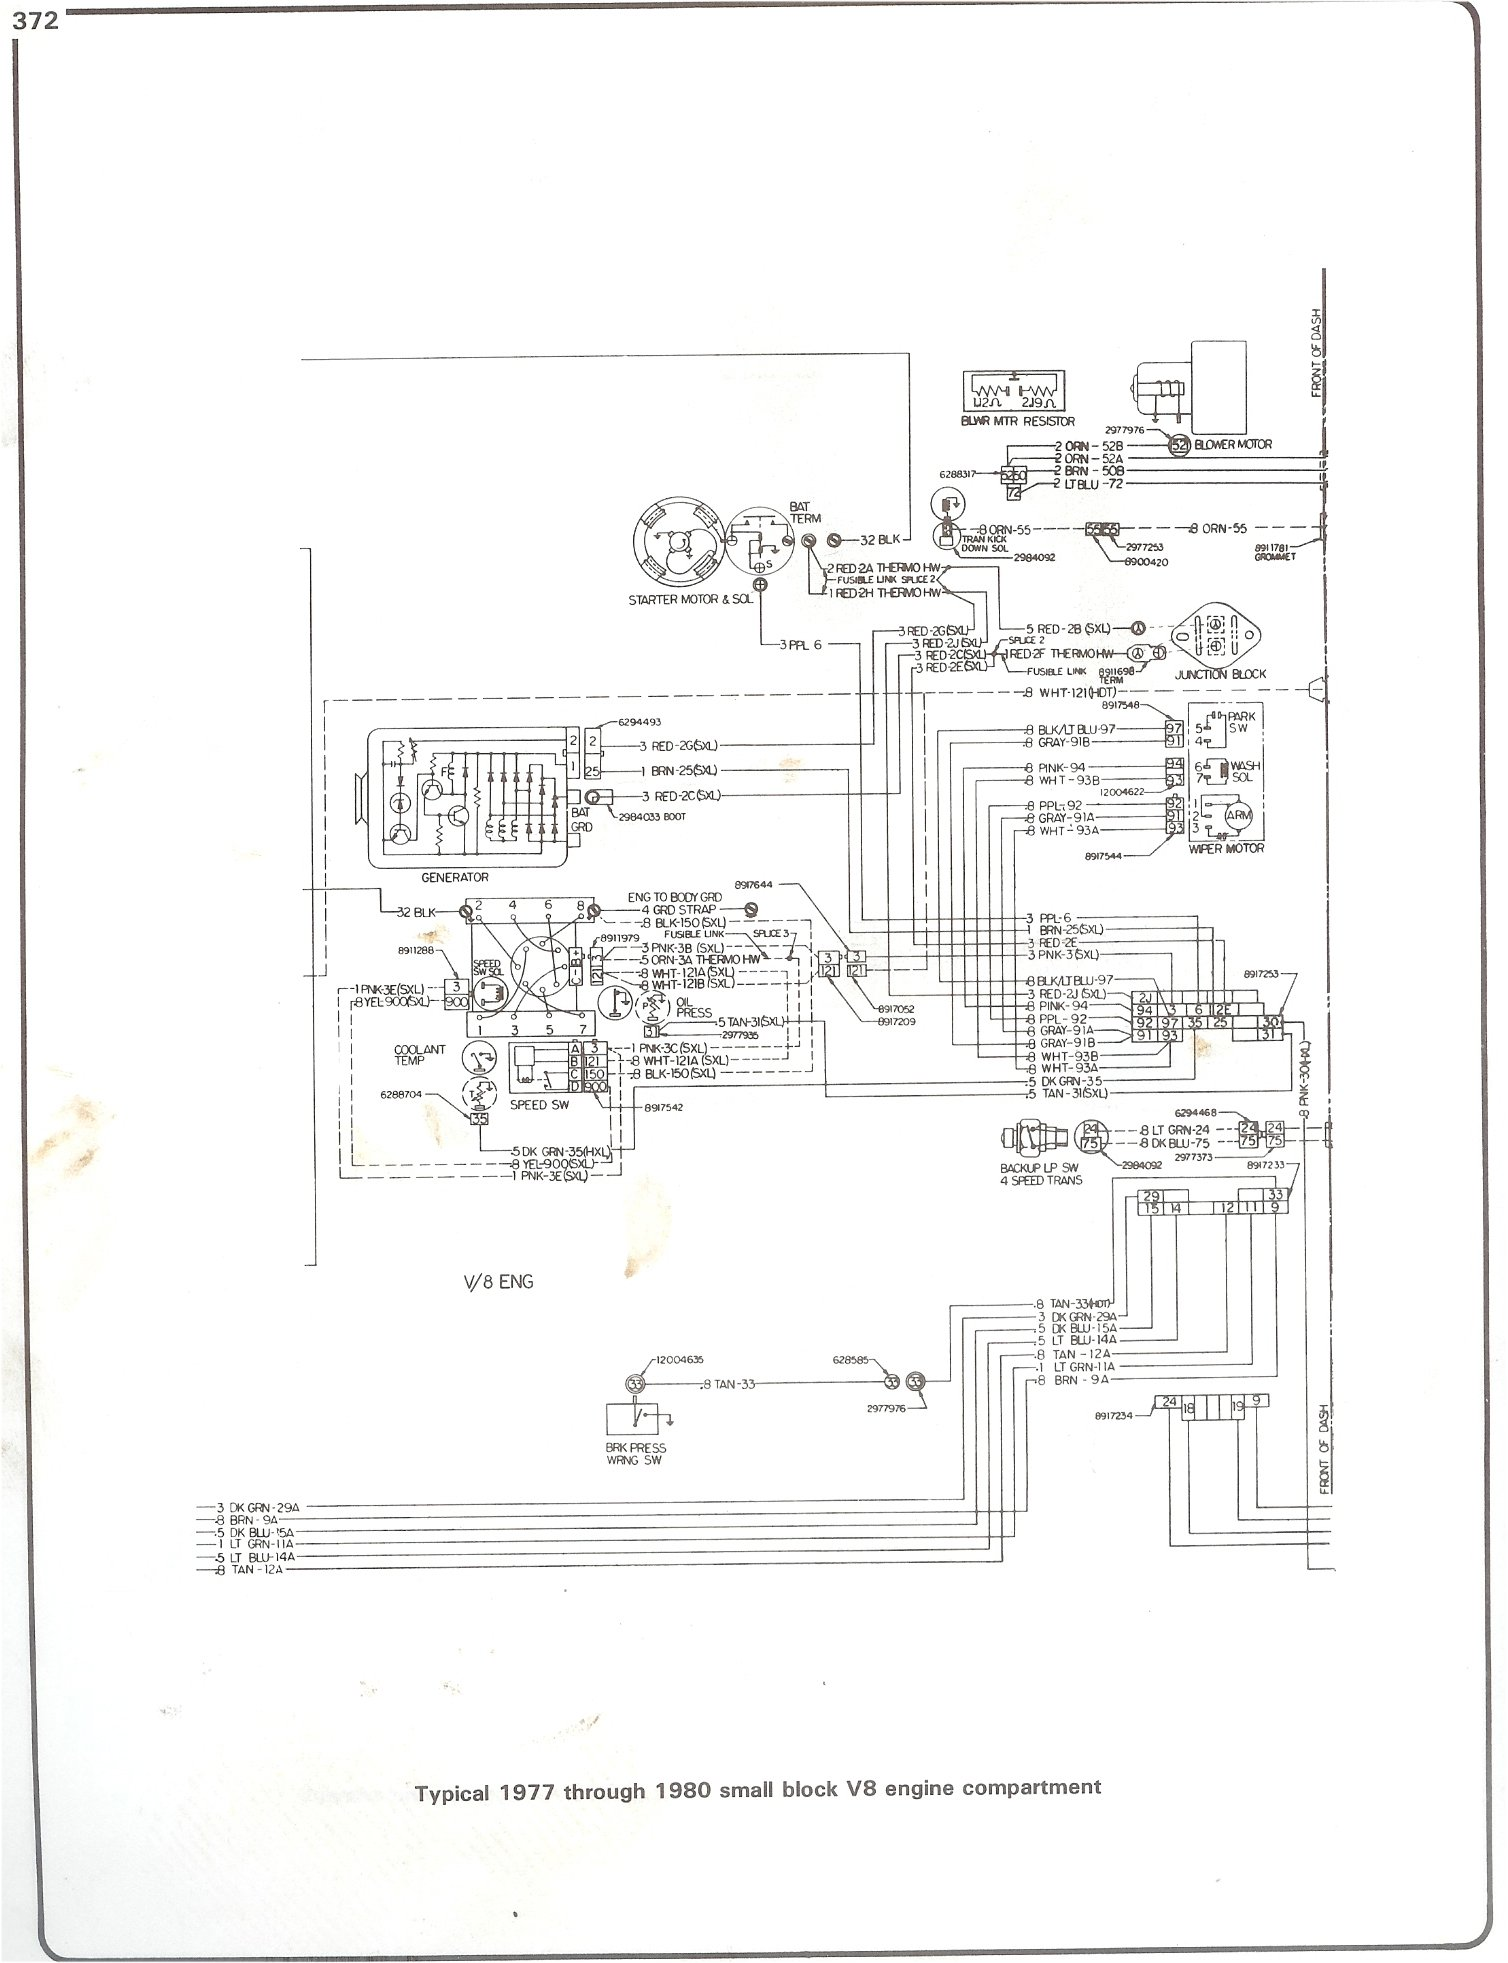 RepairGuideContent additionally Passenger  partment Switches And Relays moreover Can Anyone Help With The Wiring For Dual Tanks in addition Index2 furthermore RepairGuideContent. on 85 toyota pickup wiring diagram